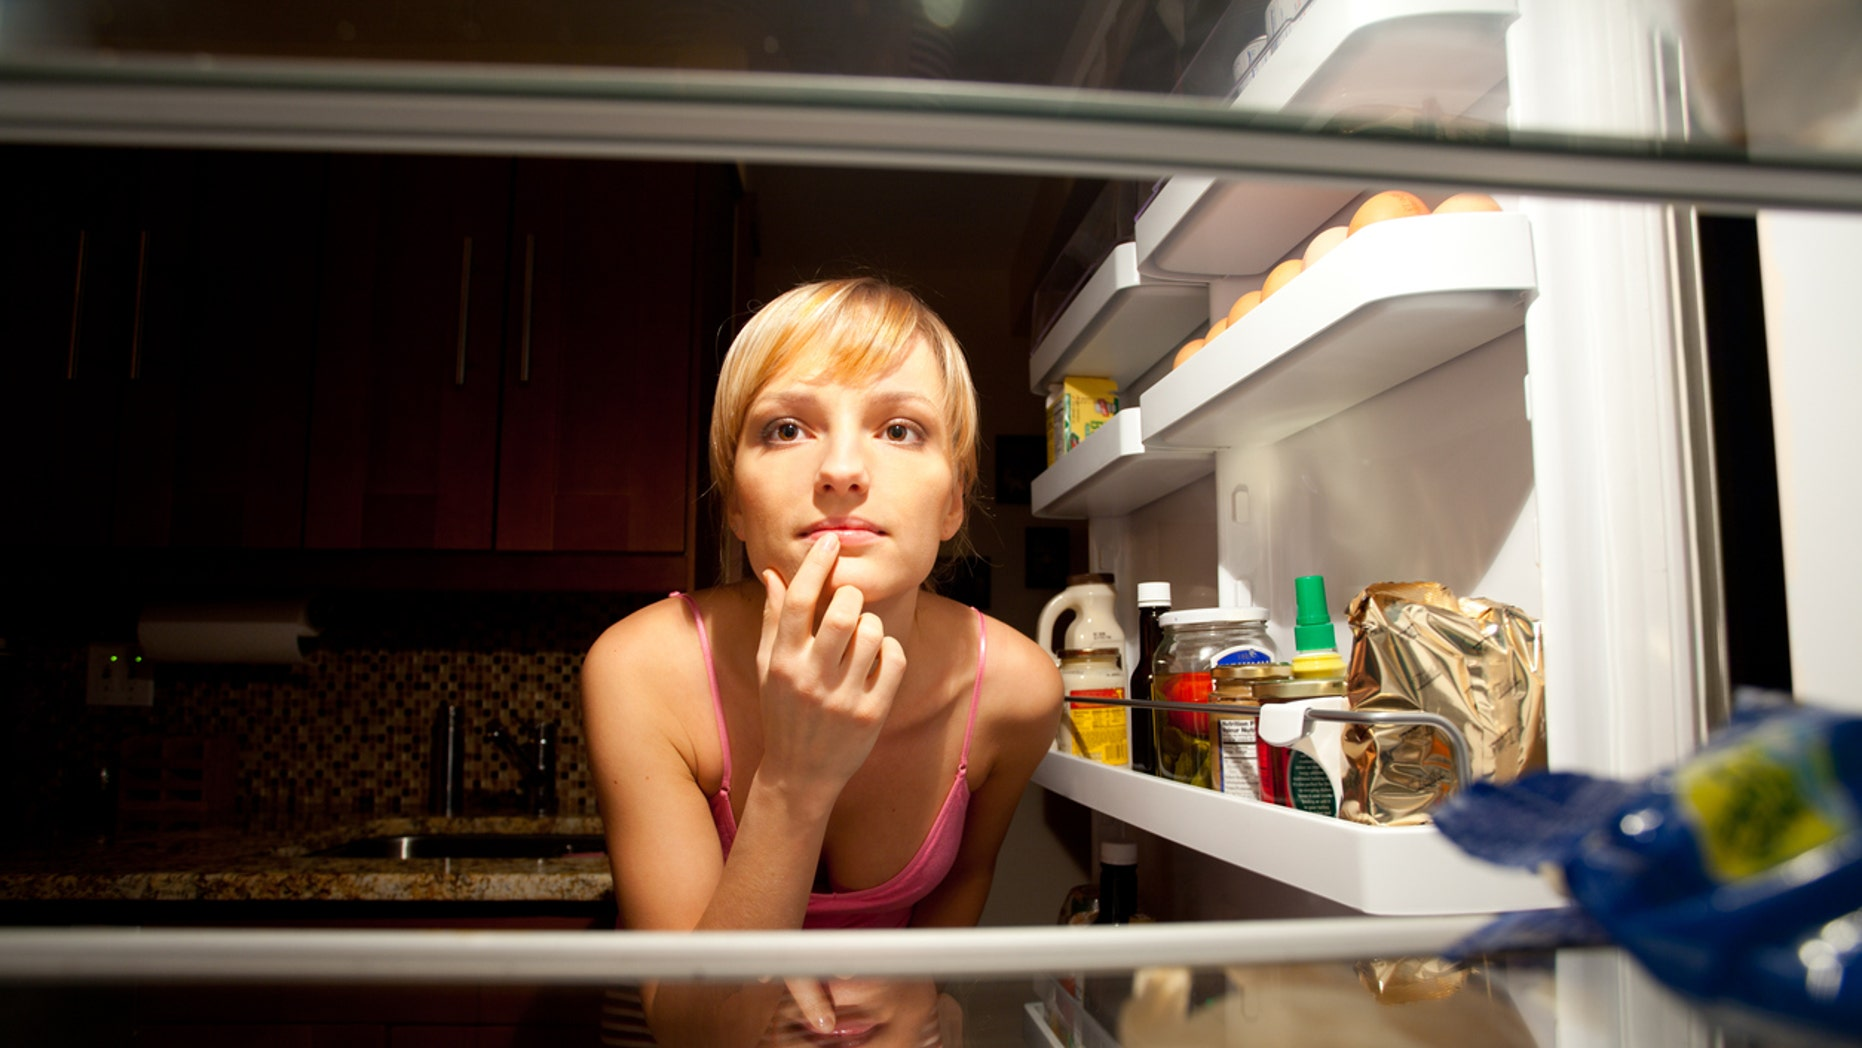 Woman thinking about her food choice inside refregirator in kitchen at night